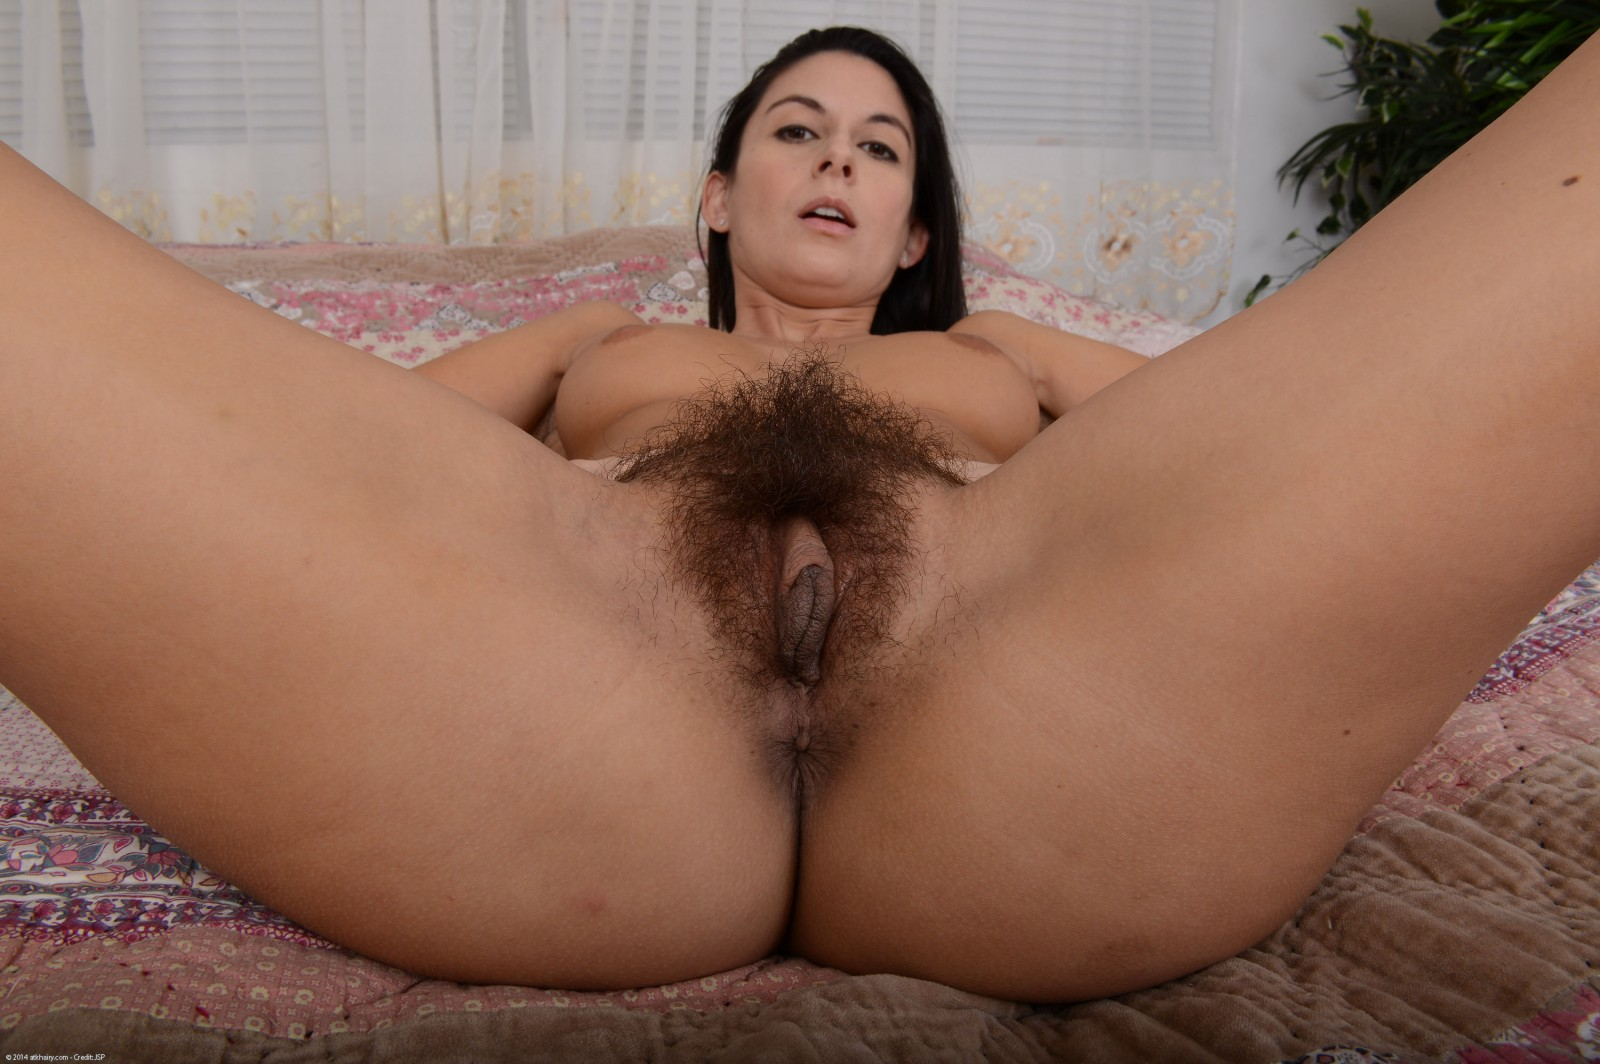 Nikki daniels039 hairy pussy gets a creampie after your date